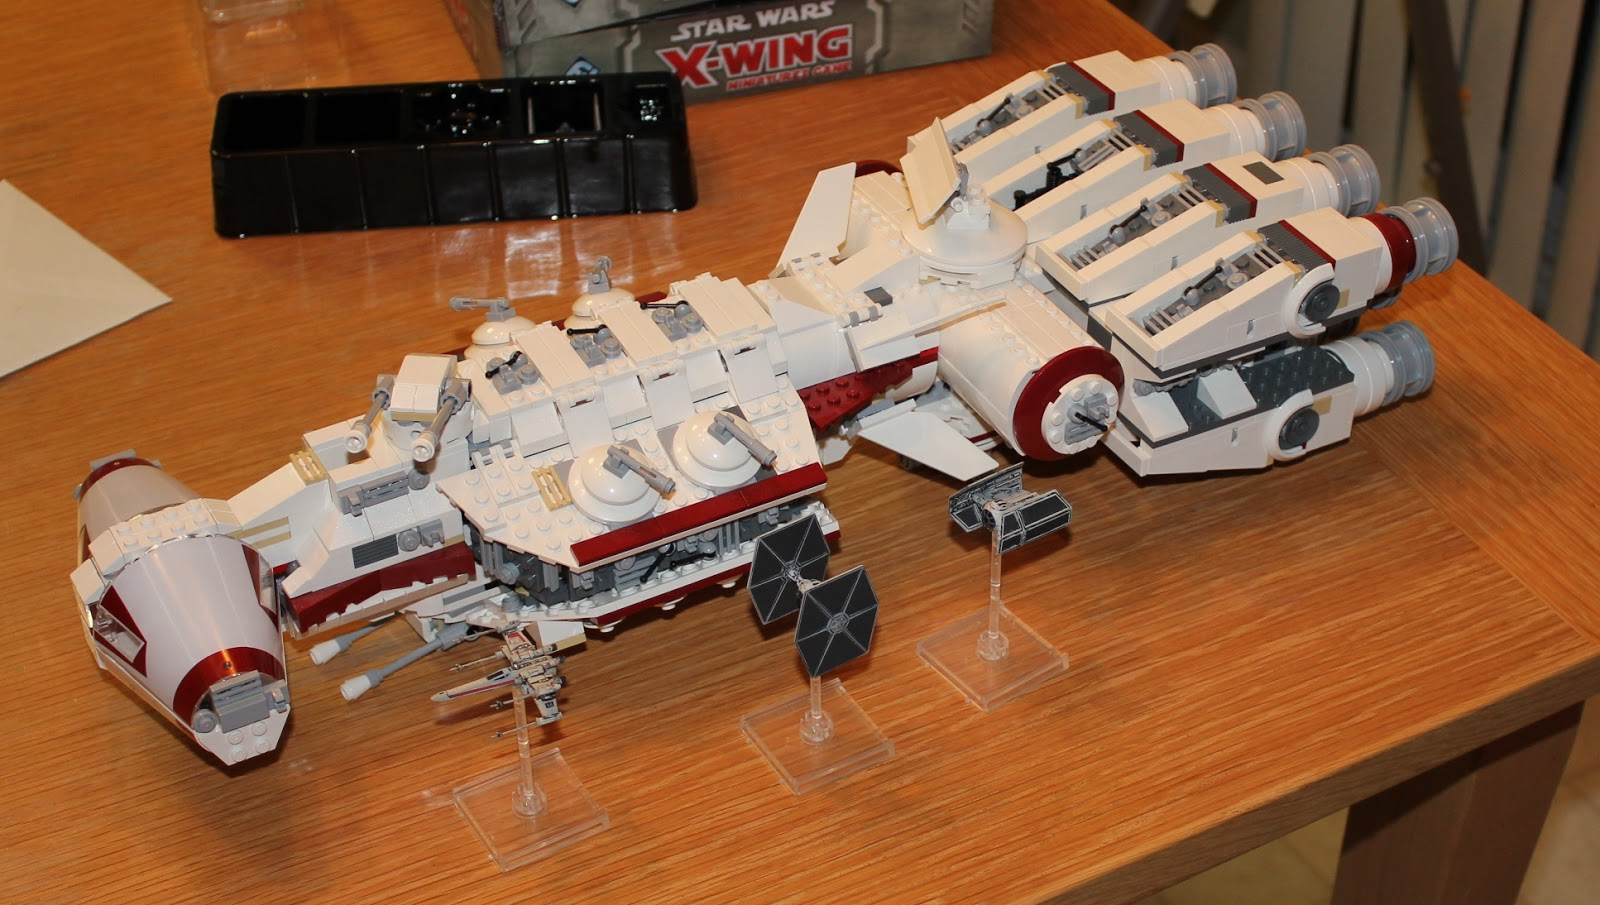 Sons of Twilight: X-Wing Miniatures Meet Lego Corellian Corvette